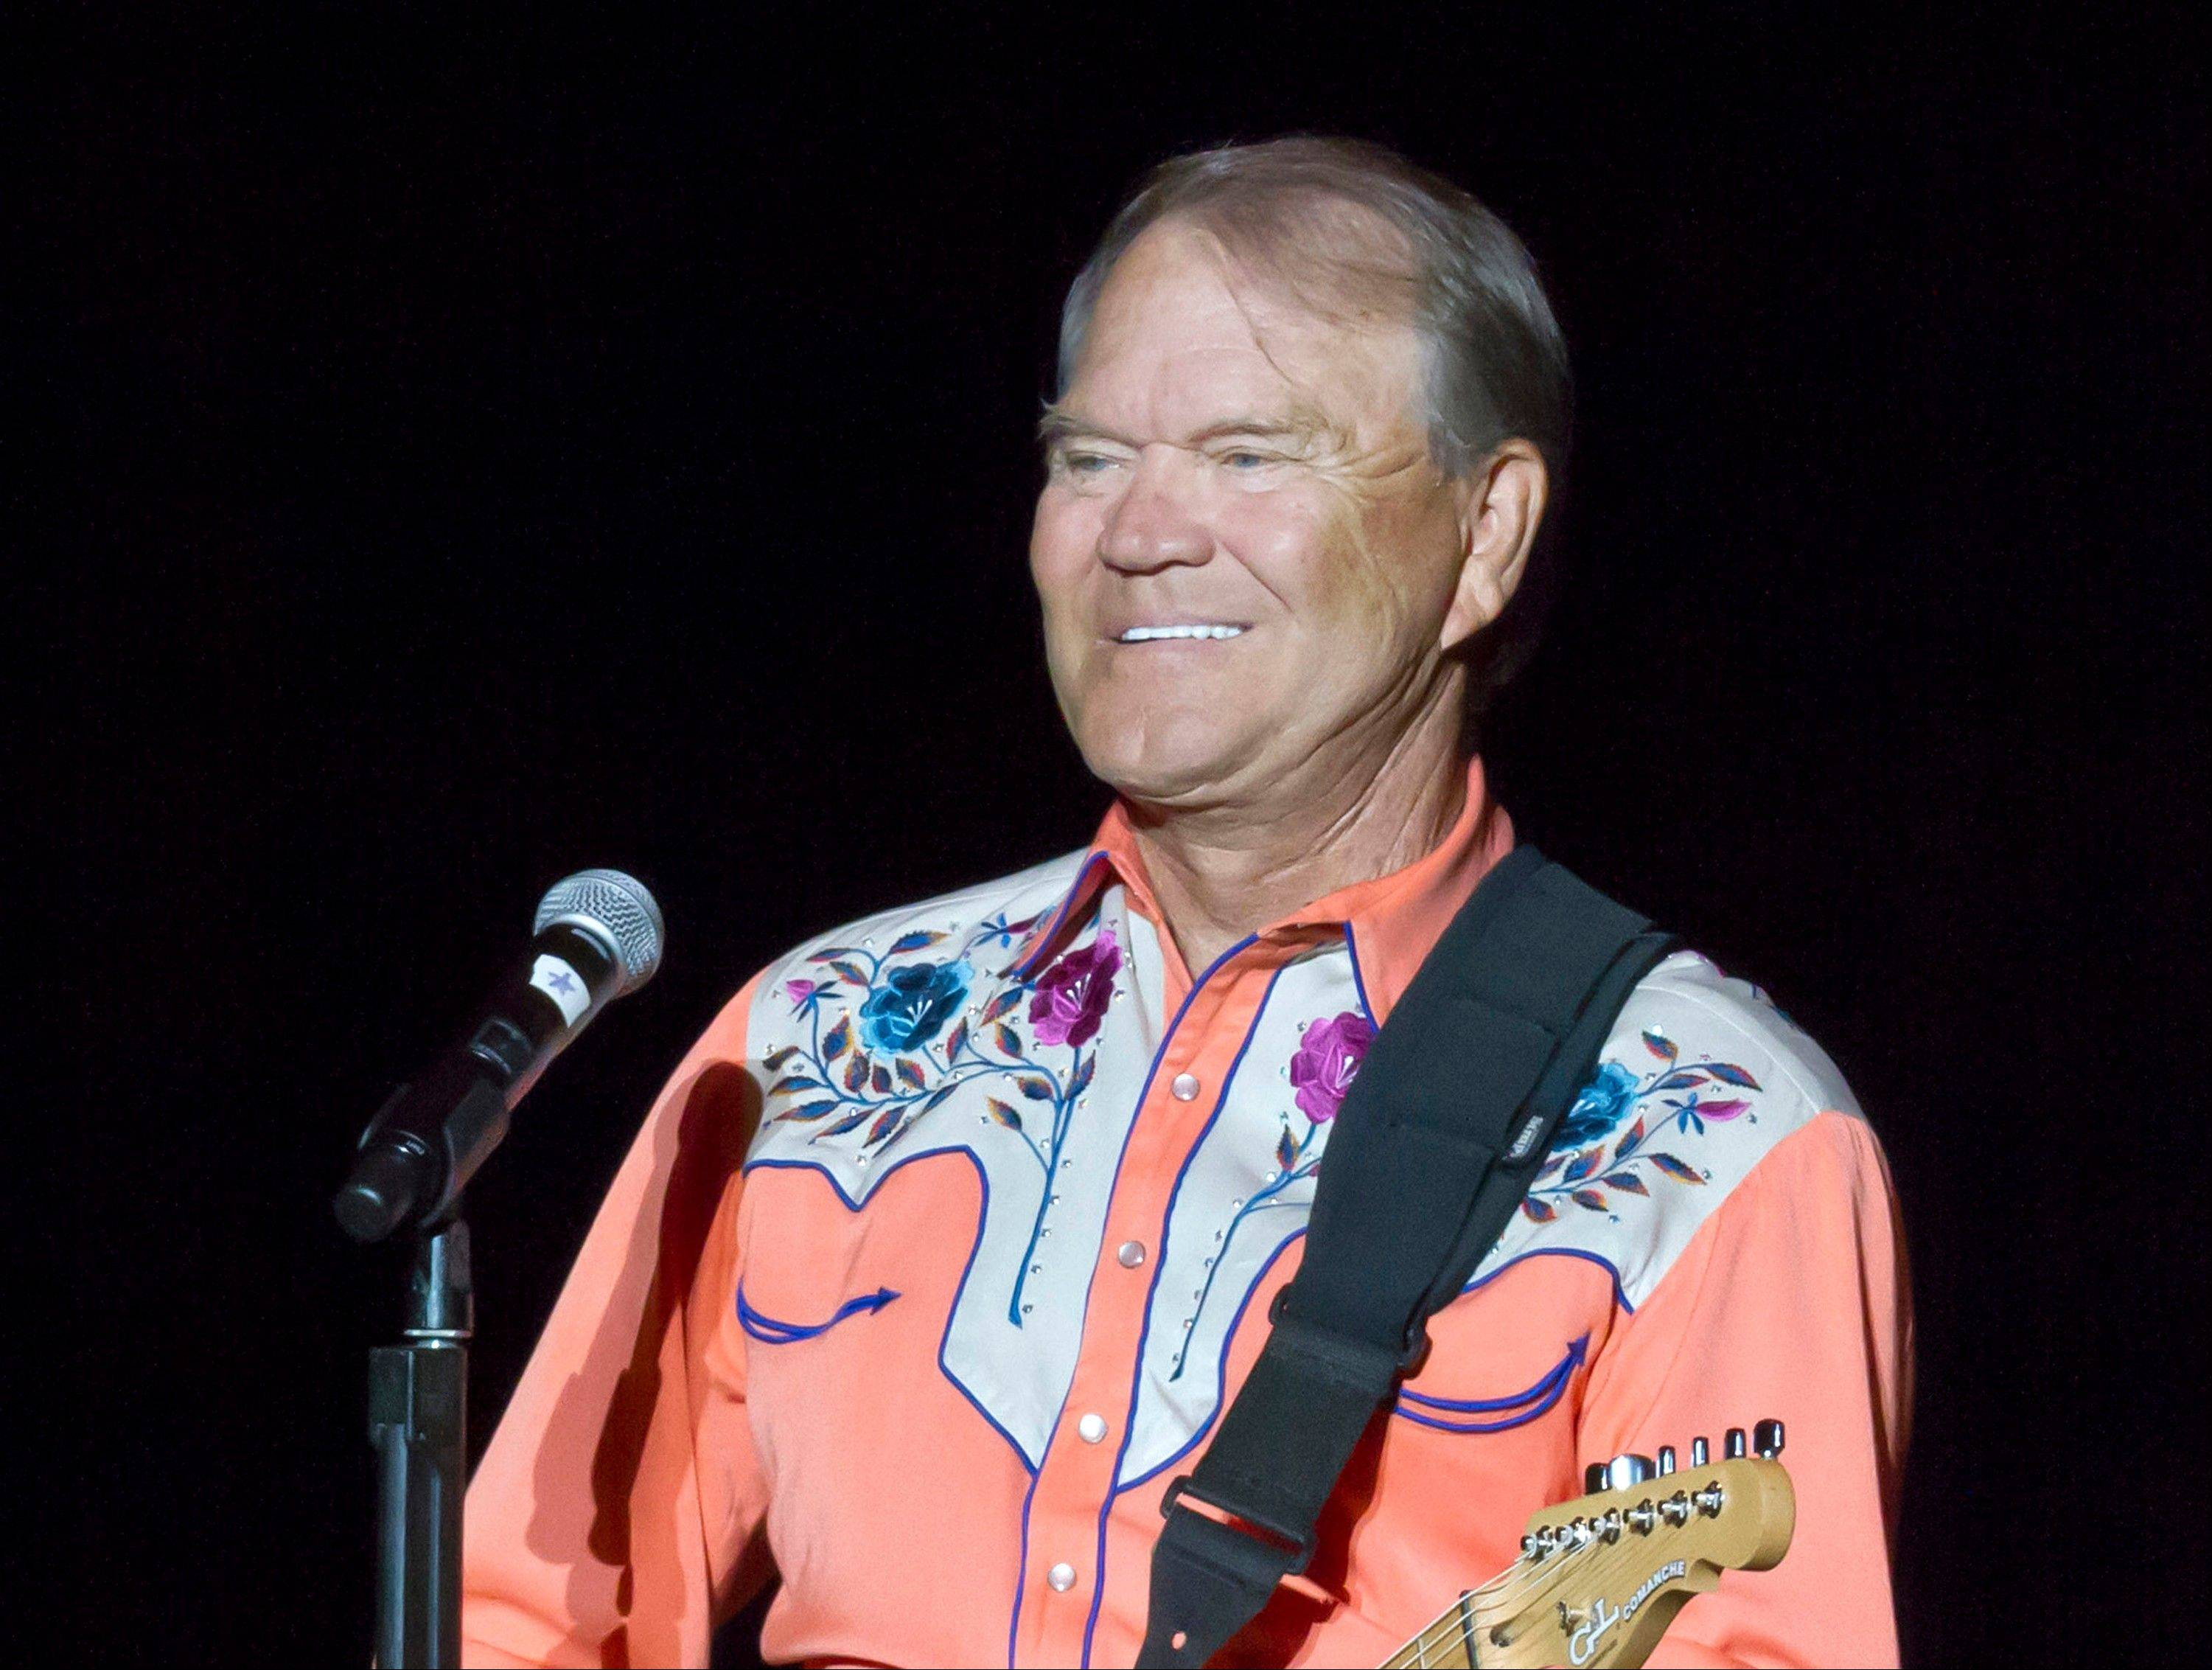 Singer Glen Campbell will be advocating for Alzheimer's disease research during a visit to Capitol Hill Monday.